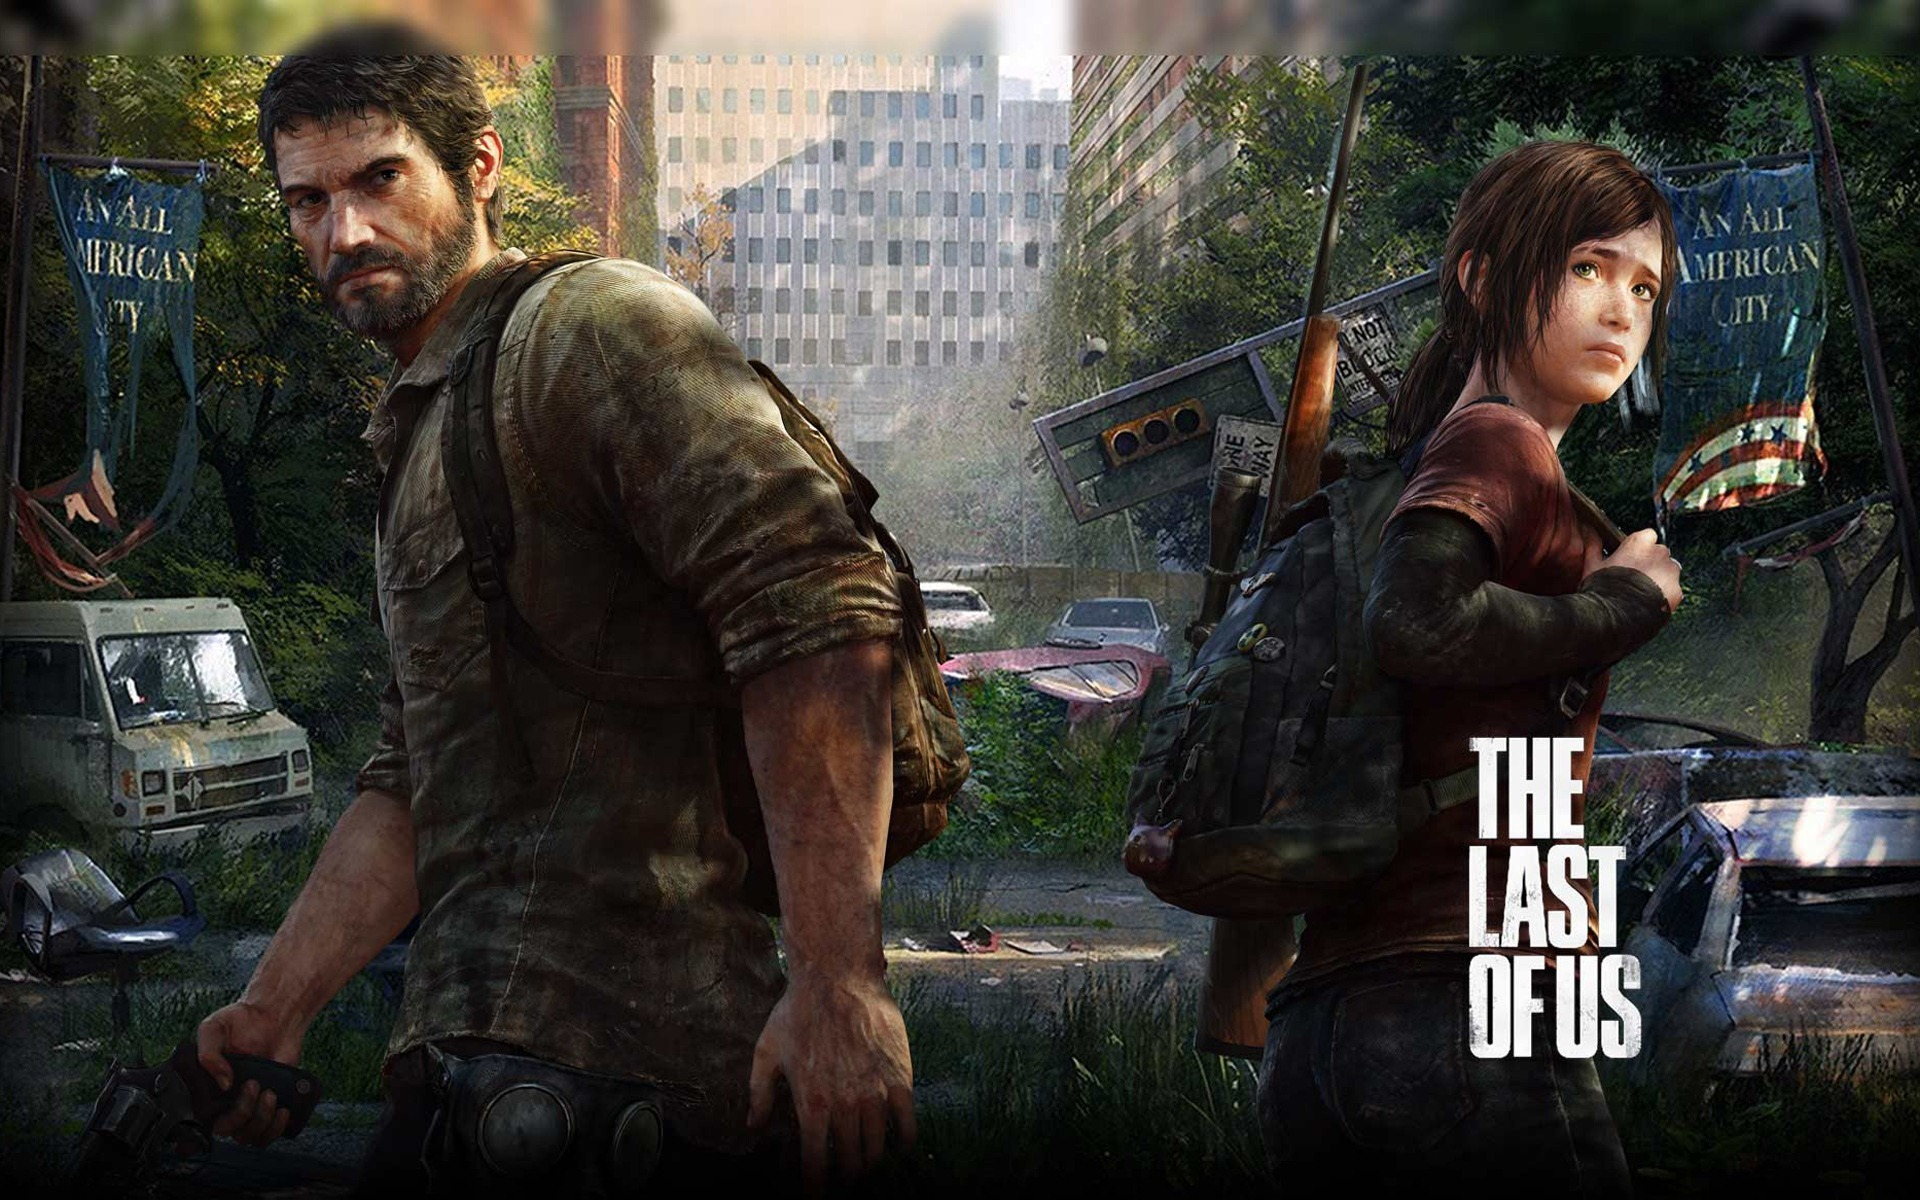 The Last Of Us Game Hd Wallpaper 05 Avance 10wallpapercom